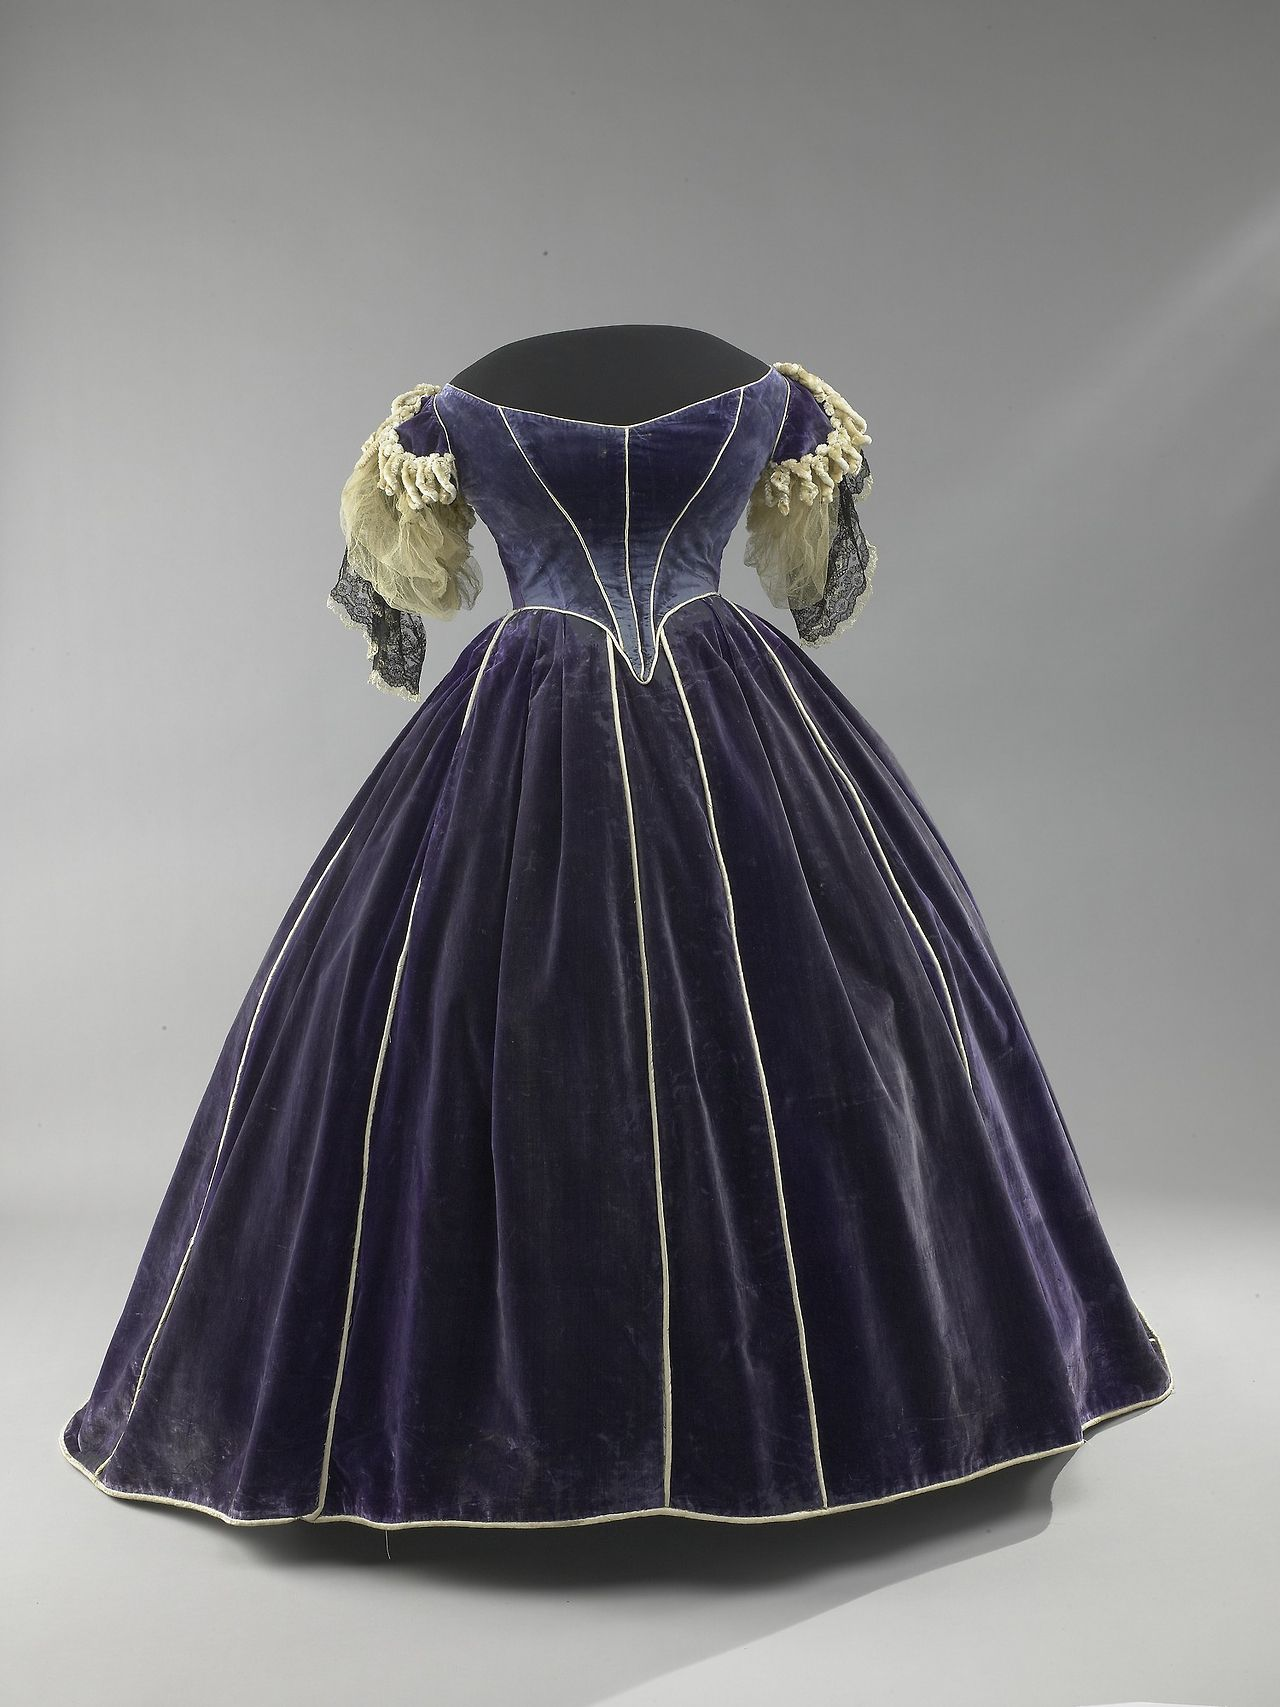 Purple velvet dress with piping trim with daytime and evening